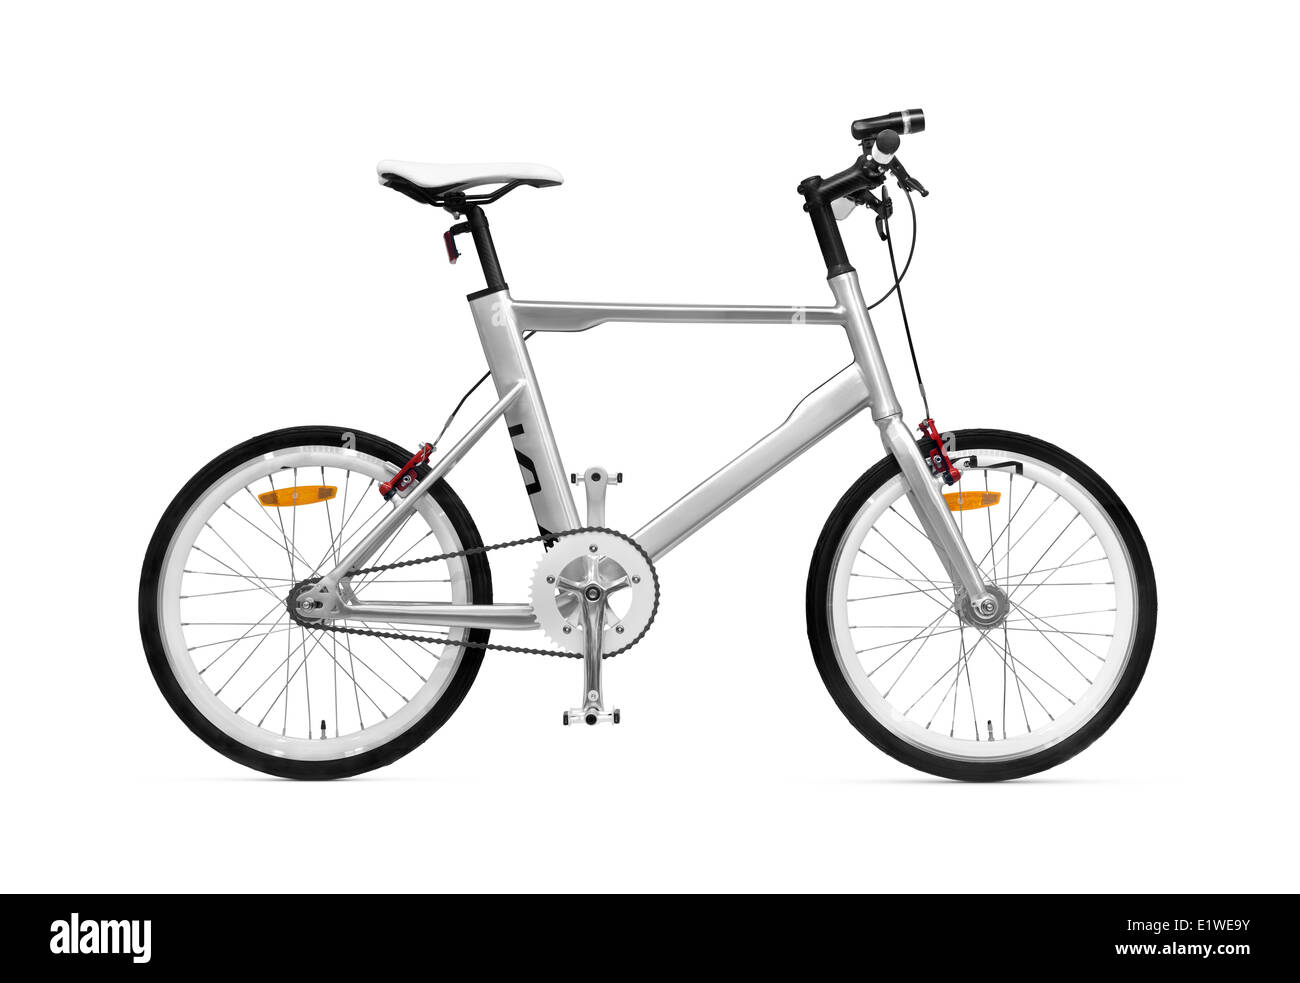 K VELO bicycle Kia Motors bike isolated on white background with clipping path Stock Photo